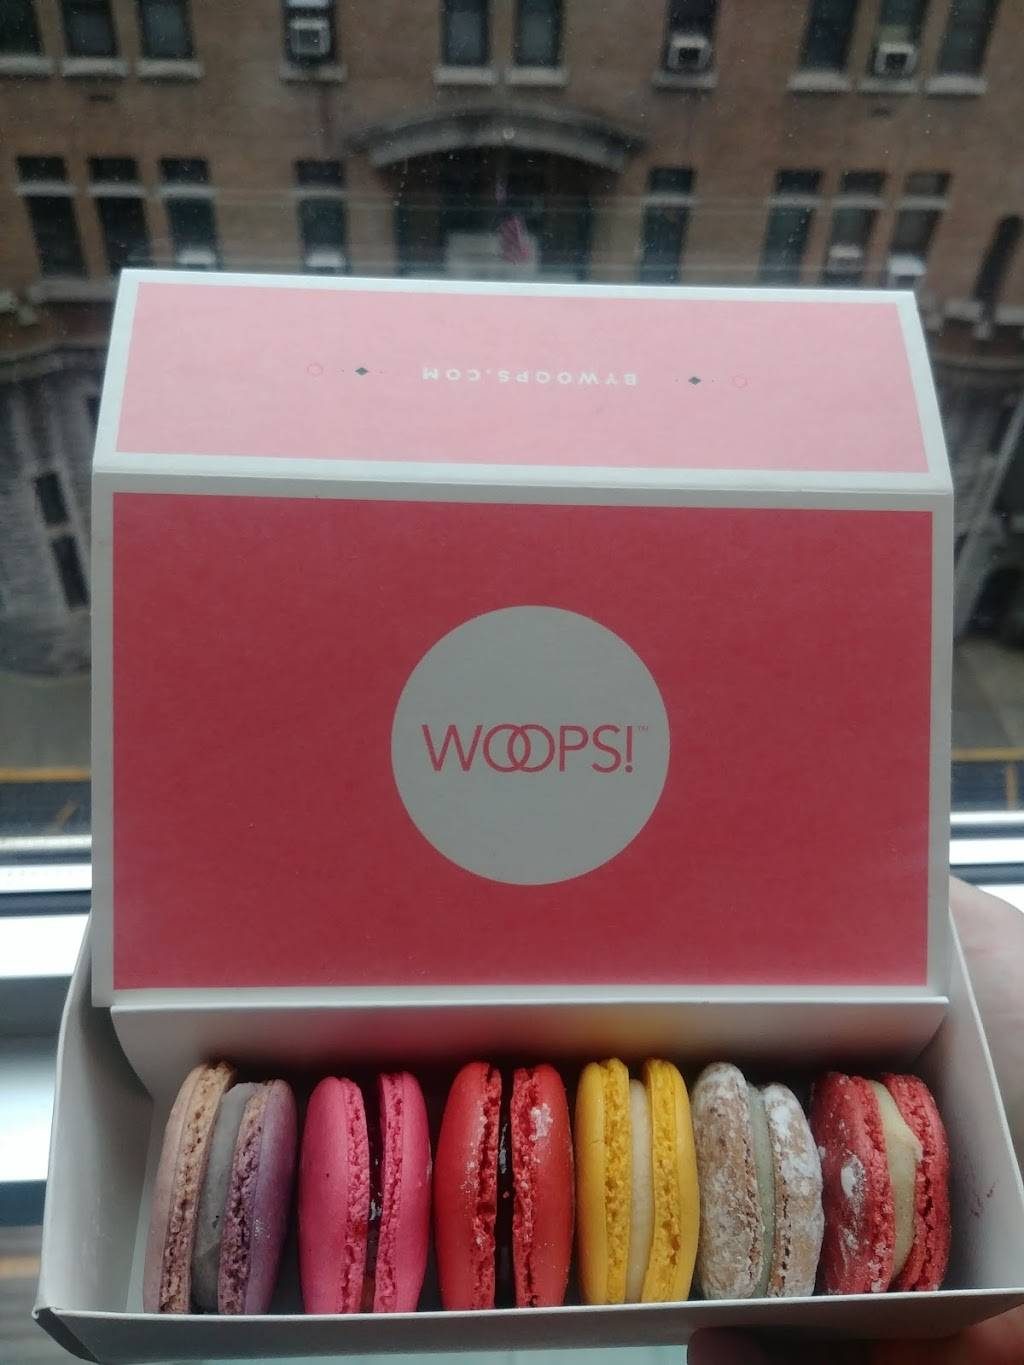 Woops! | bakery | 625 8th Ave, New York, NY 10018, USA | 2012303262 OR +1 201-230-3262